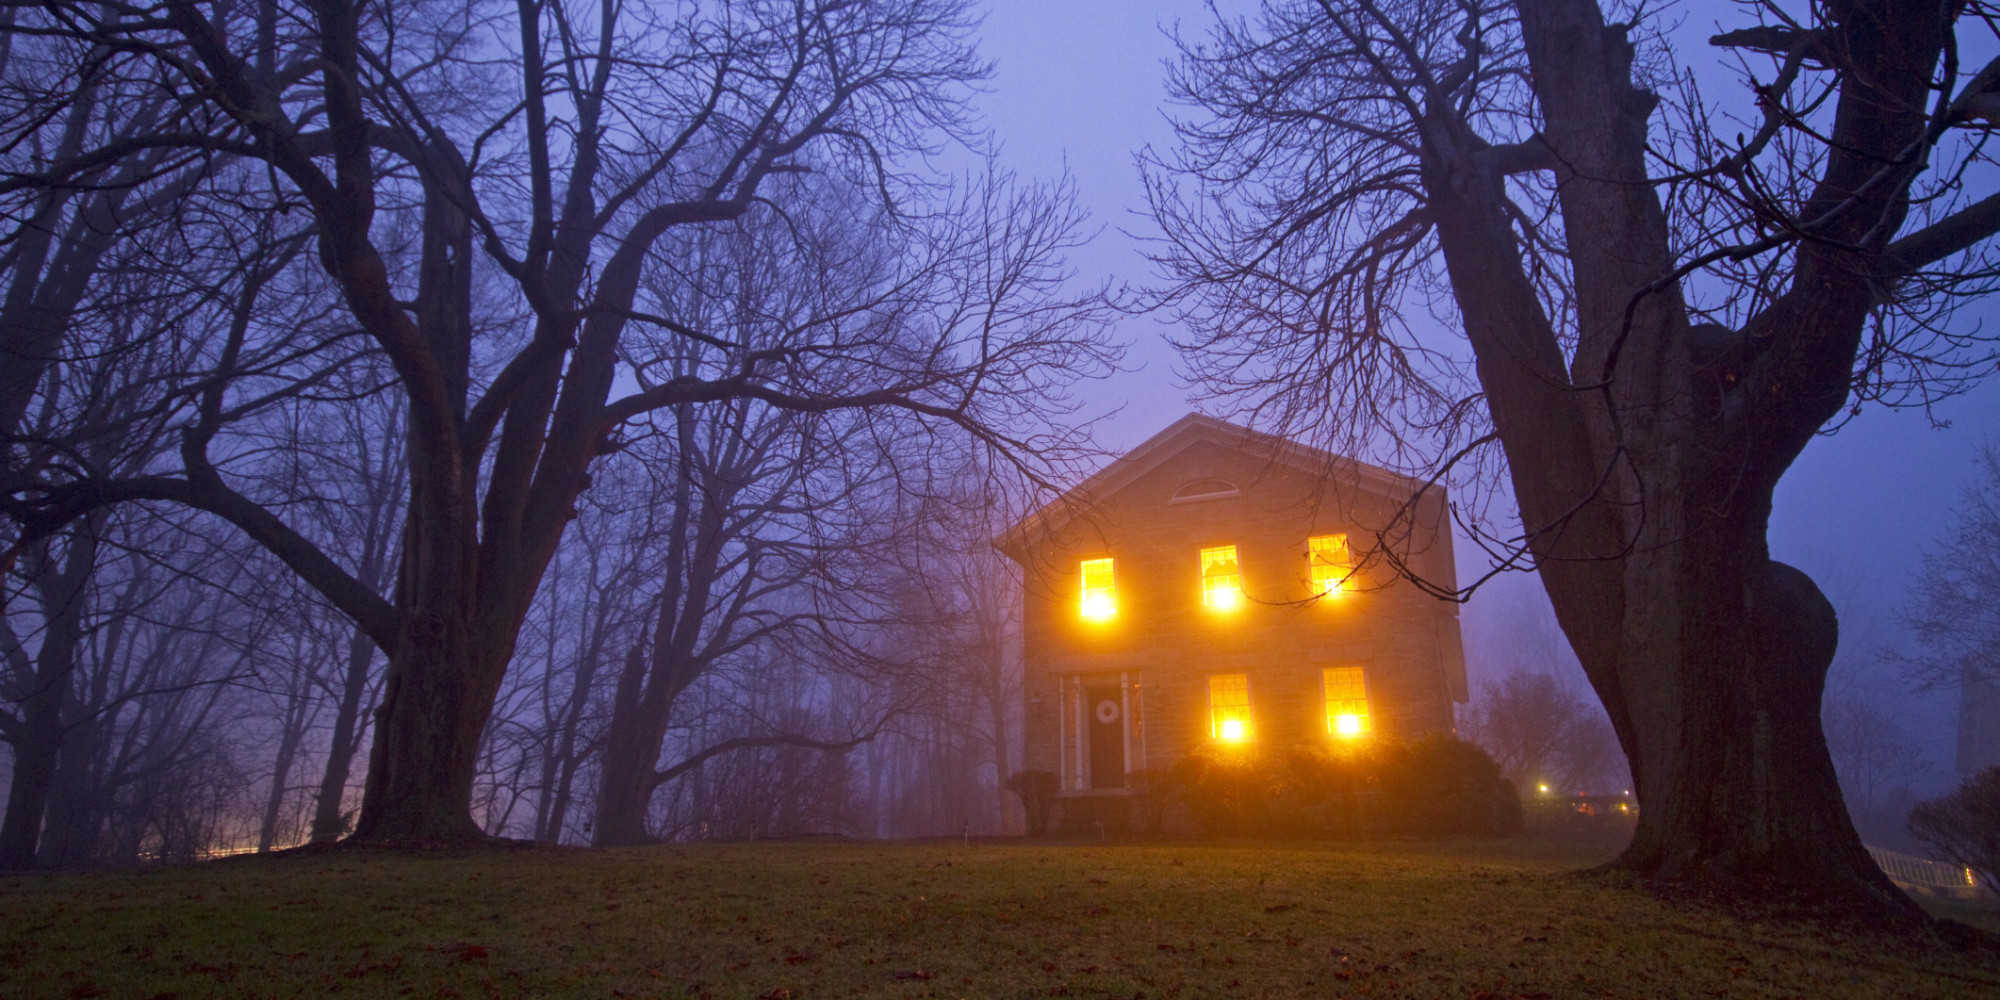 I need a bit of help with the description of a haunted house/paranormal activities?